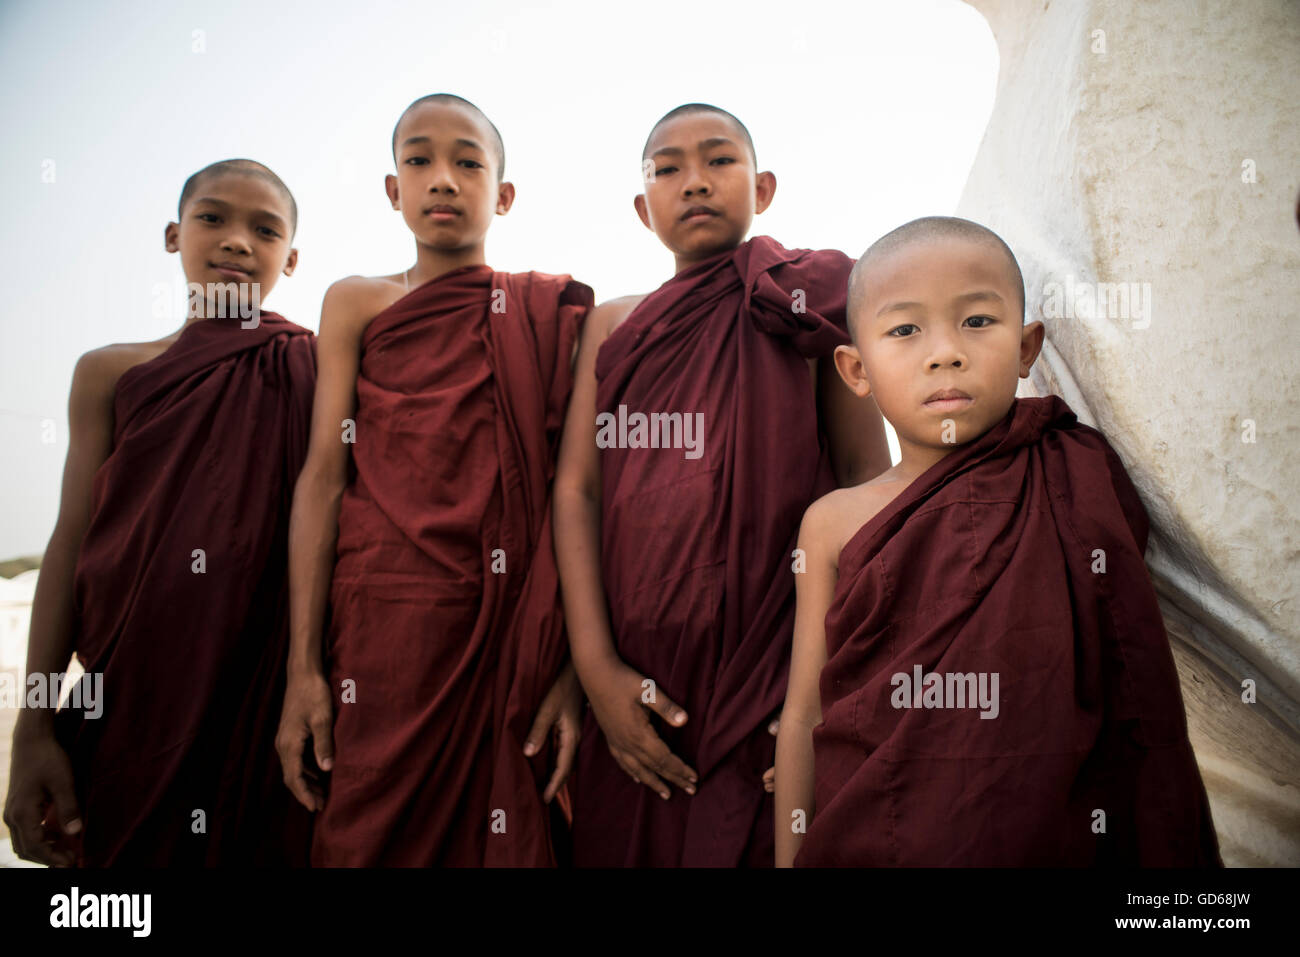 A group of Buddhist monks at the Hsinbyume Pagoda, Mingun, Sagaing, Myanmar. - Stock Image